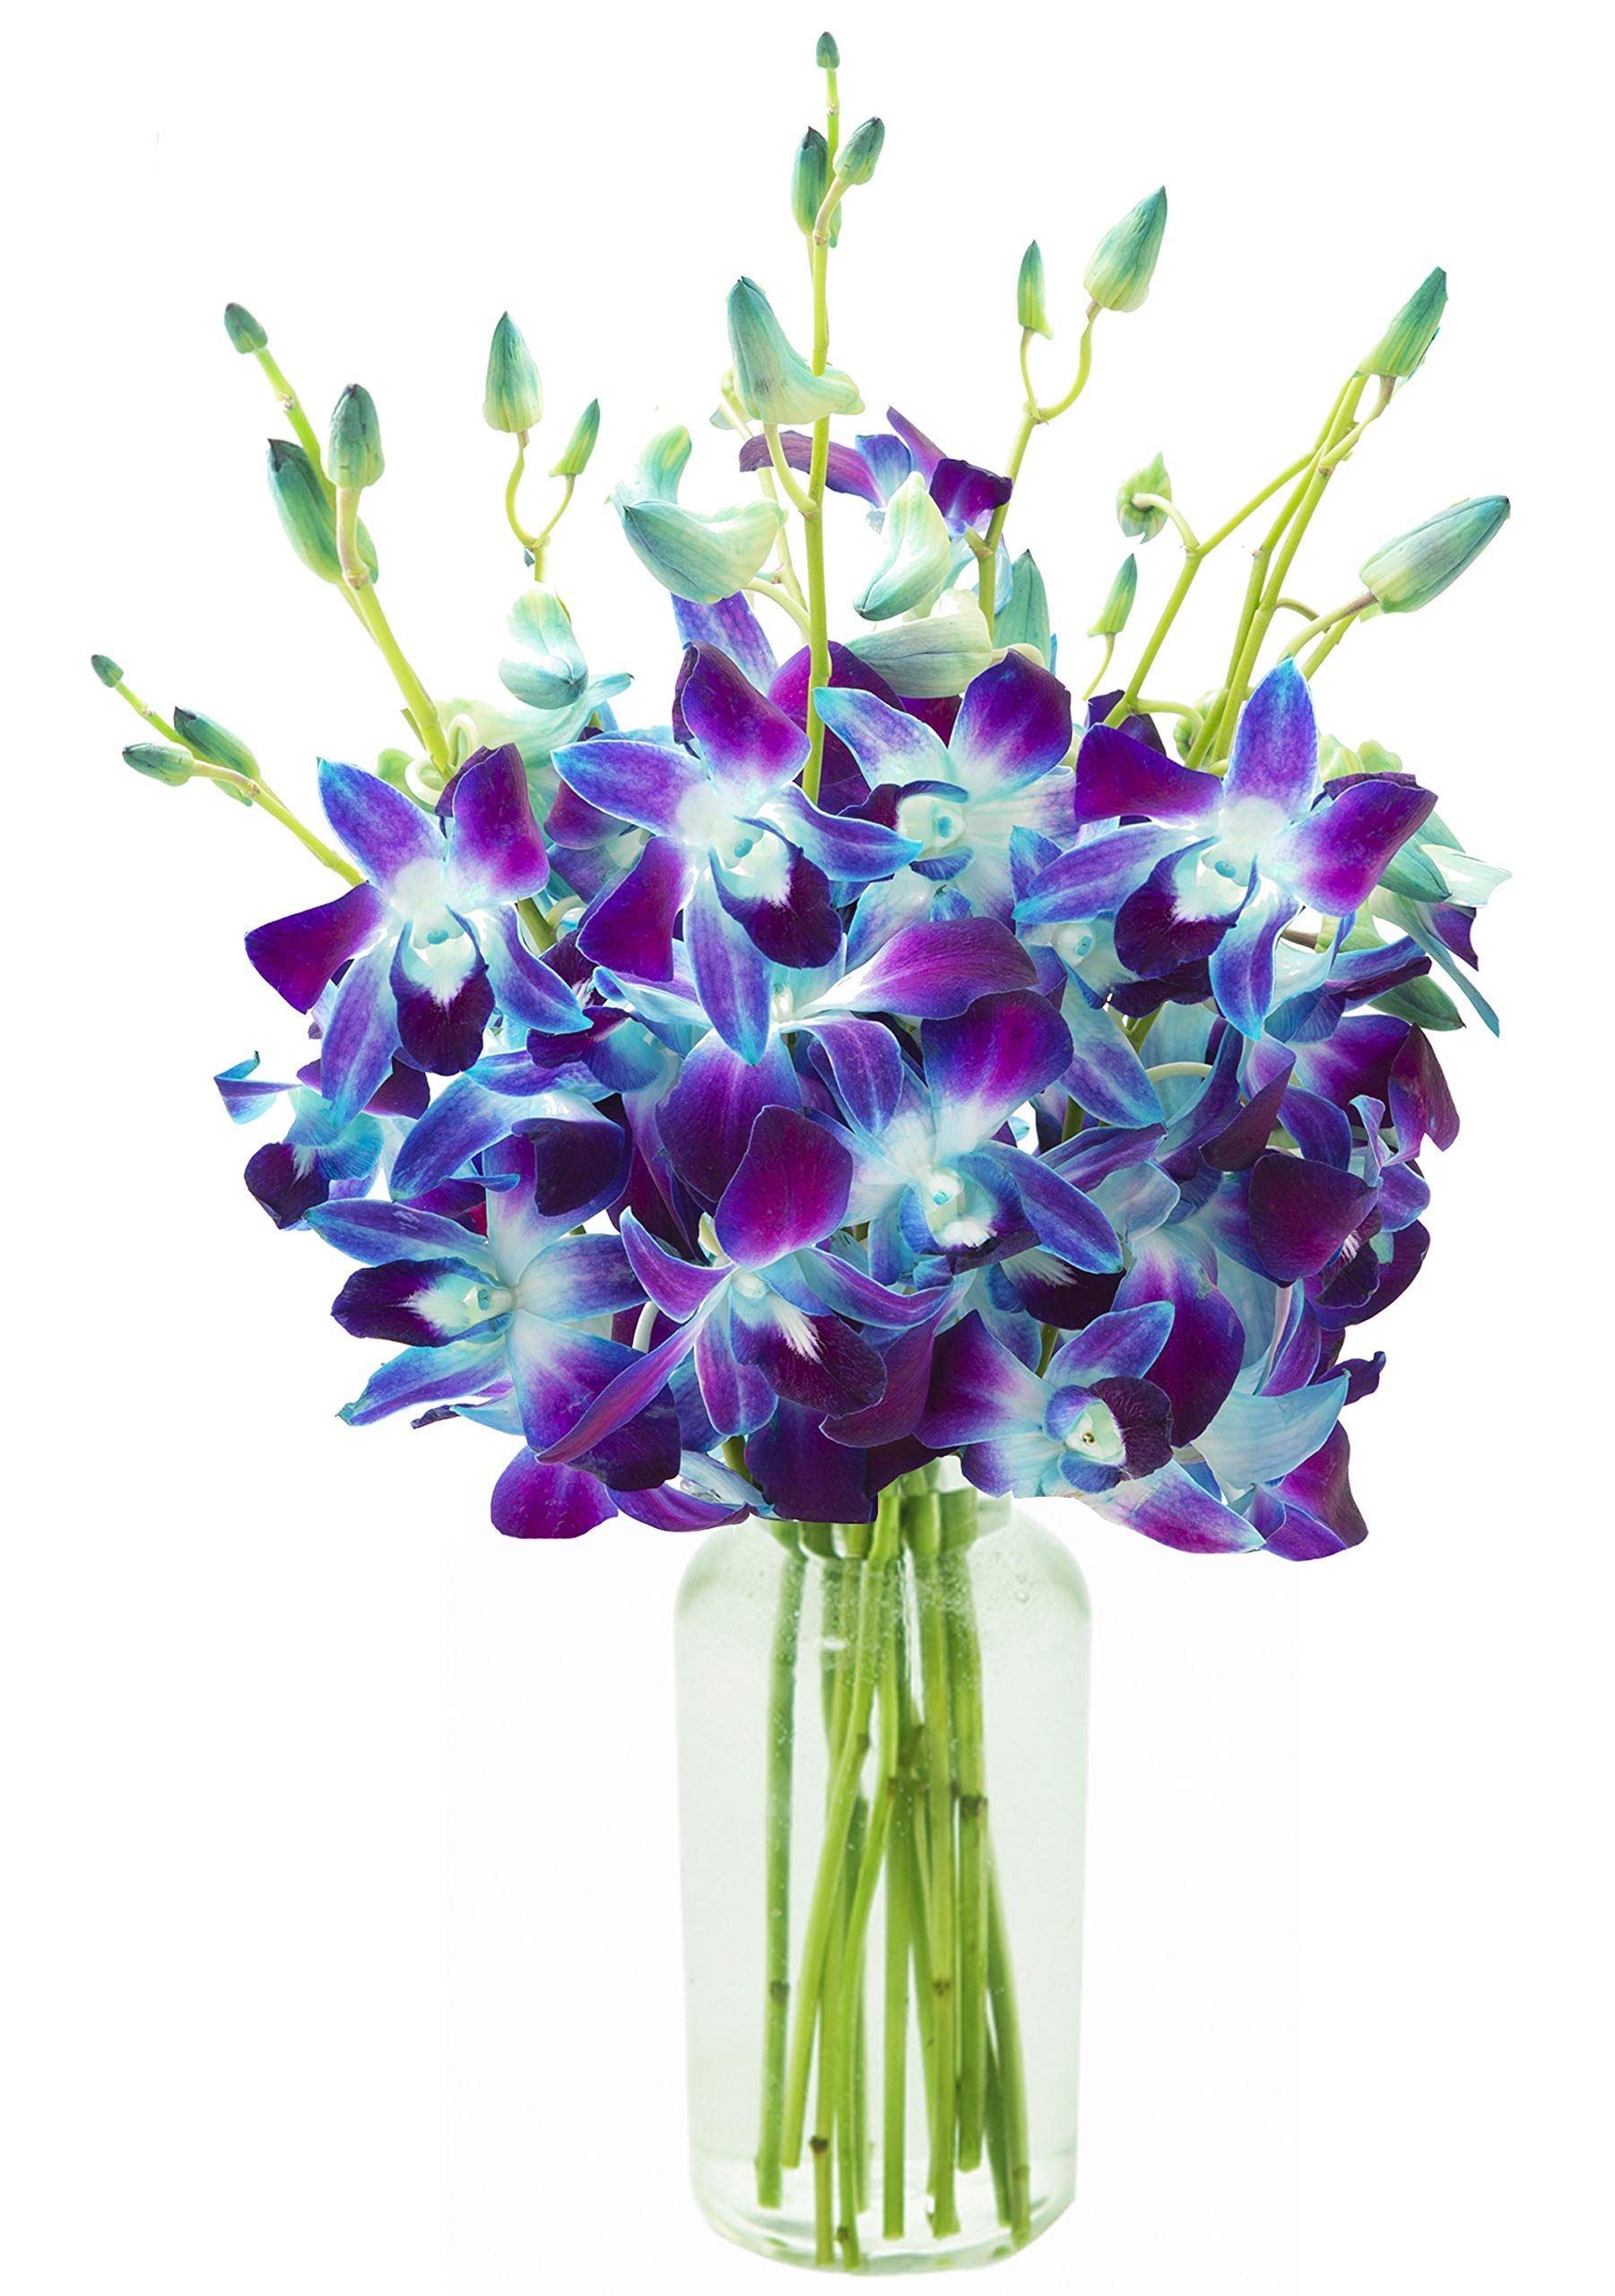 KaBloom Premium 2-Pack Exotic Sapphire Orchid Bouquet of Blue Orchids from Thailand with Vase by KaBloom